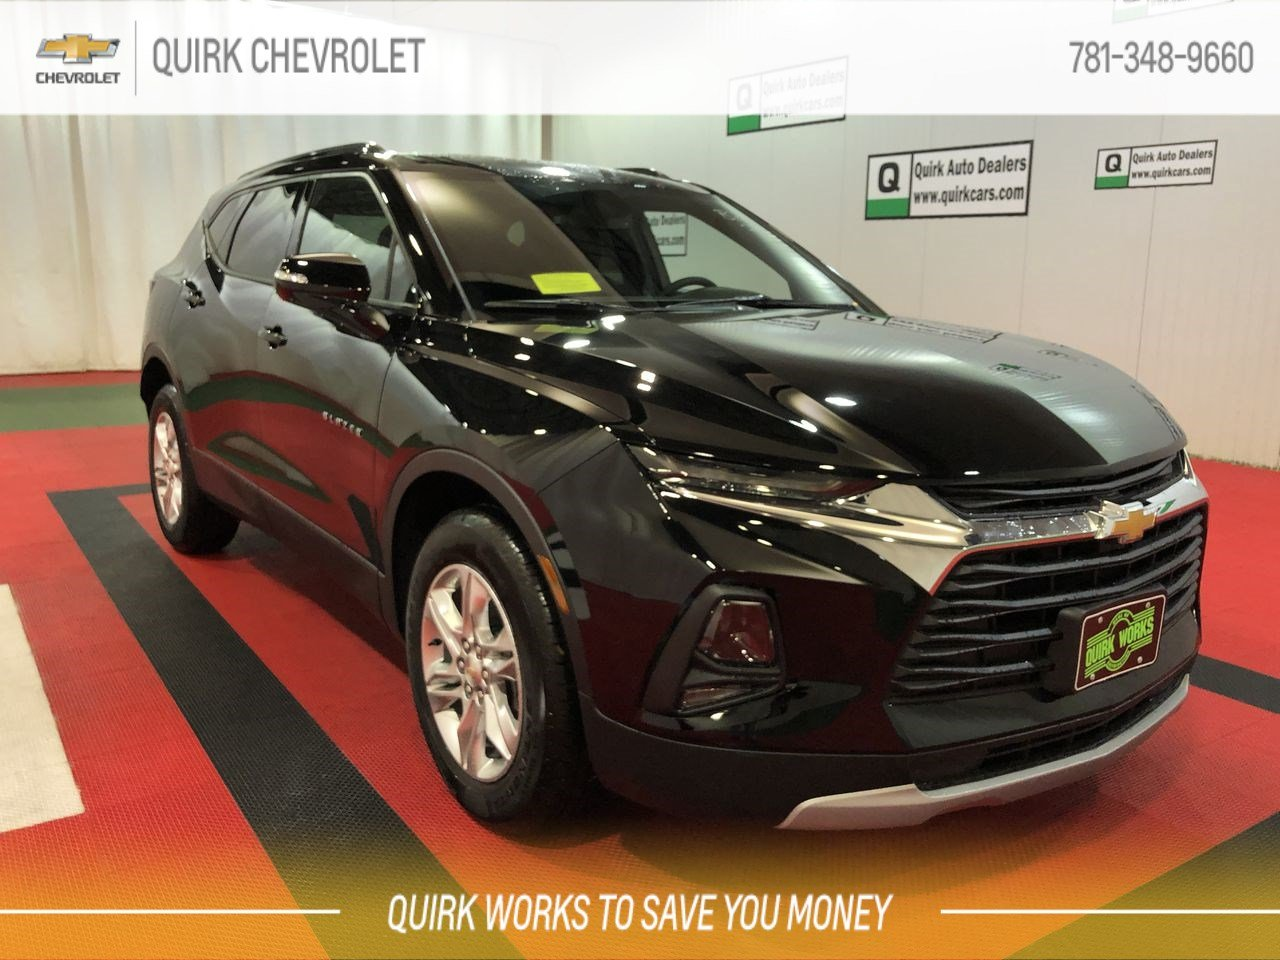 2019 Chevrolet Blazer V6 Awd Conv Conf Package Quirk Chevrolet